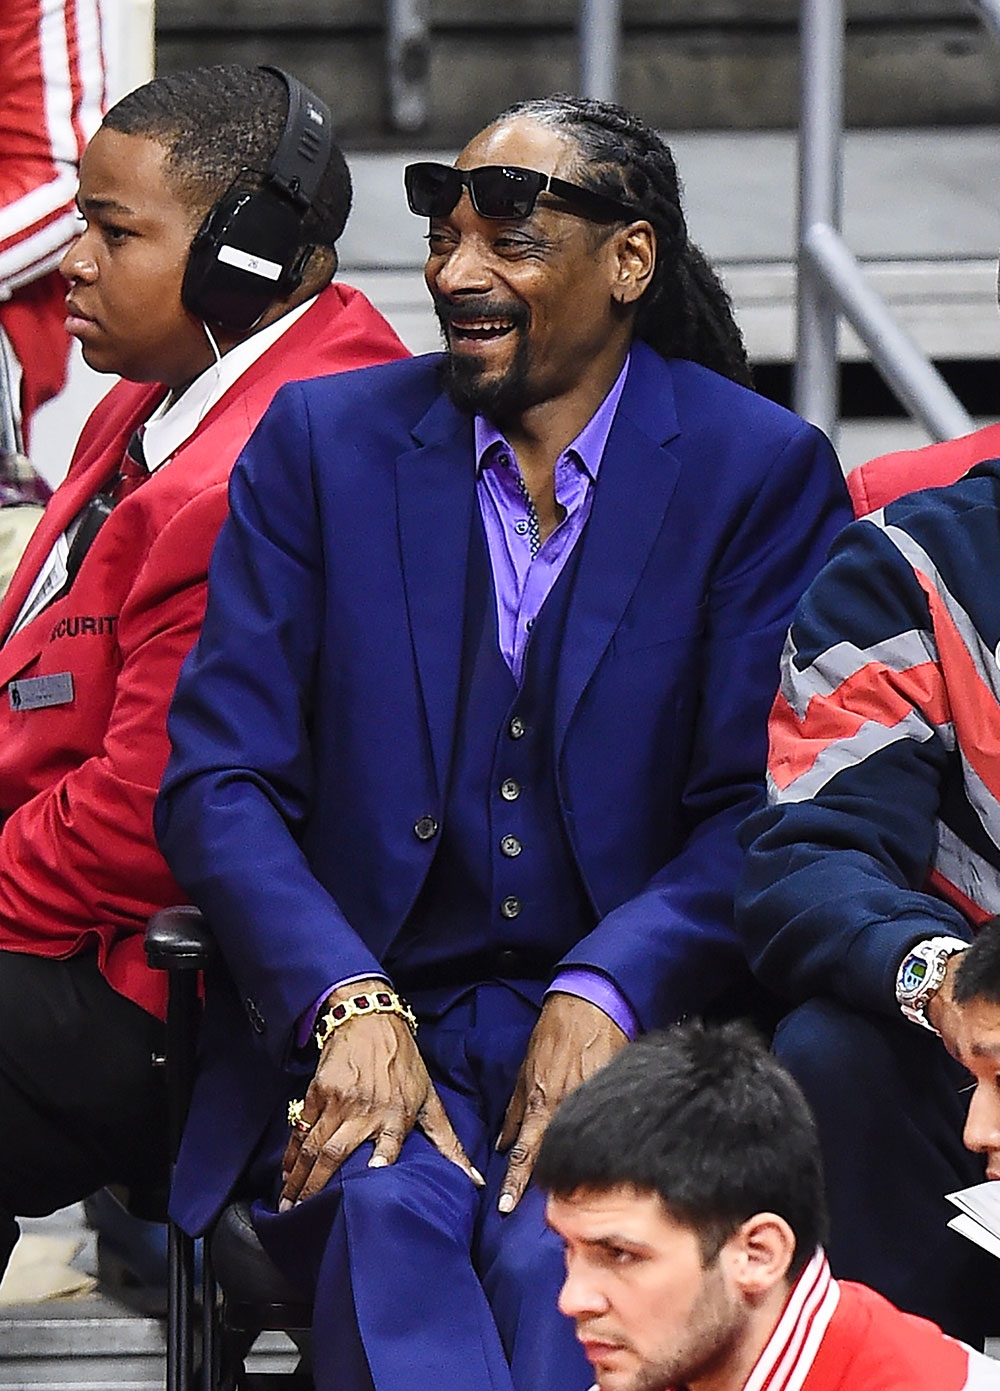 Celebrities at the NBA Playoffs